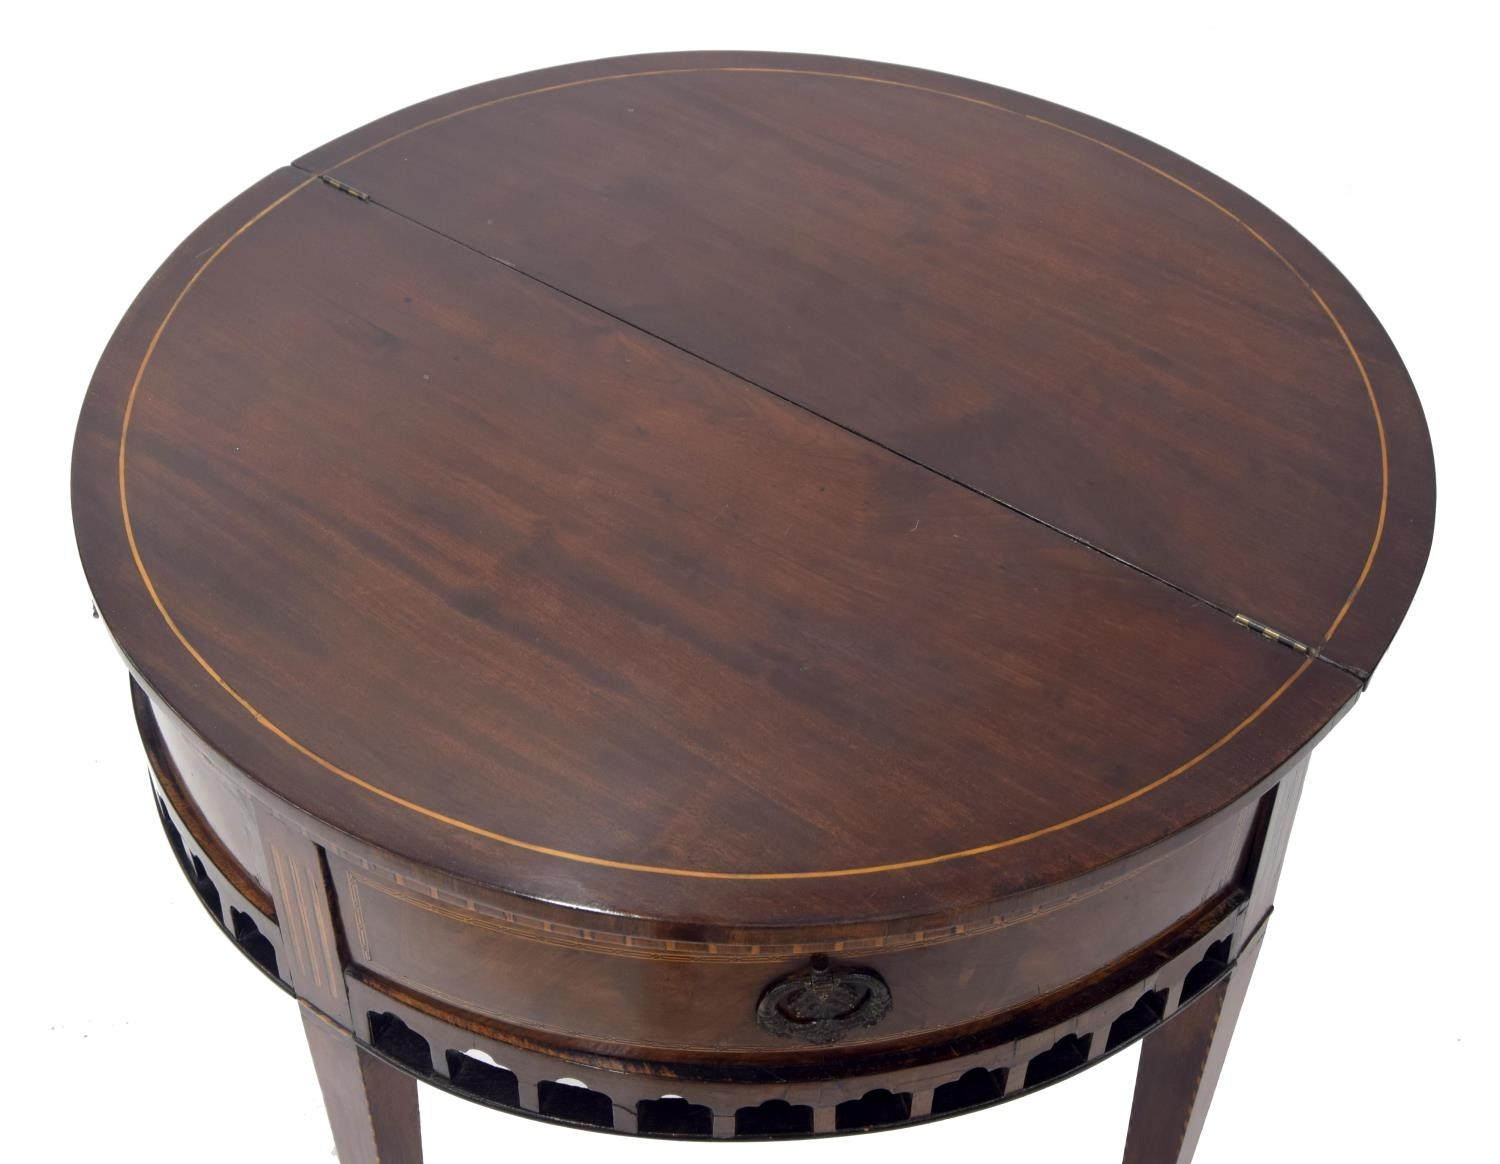 Dutch 19th century mahogany inlaid demi-lune fold-over tea table, the hinged top above a pull-out - Image 2 of 3